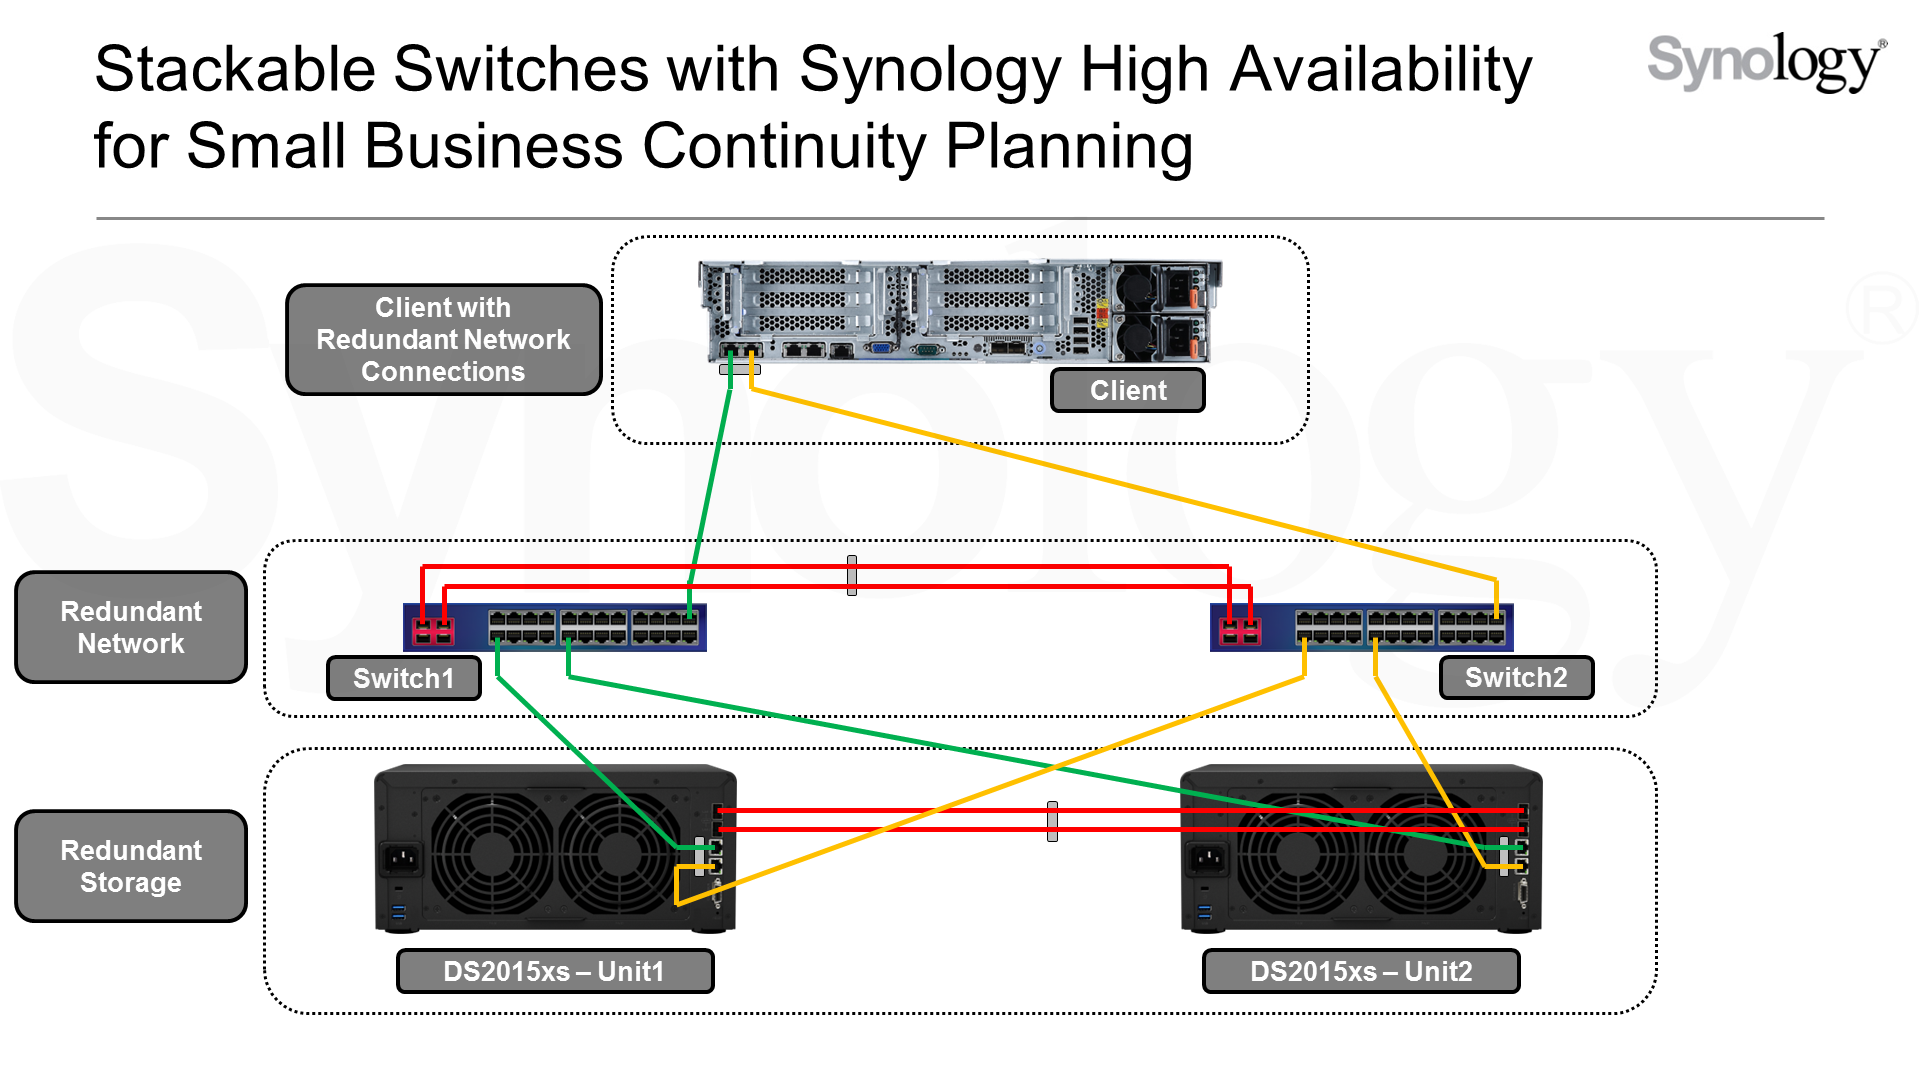 Stackable Switches and Synology High Availability for Small Business ...